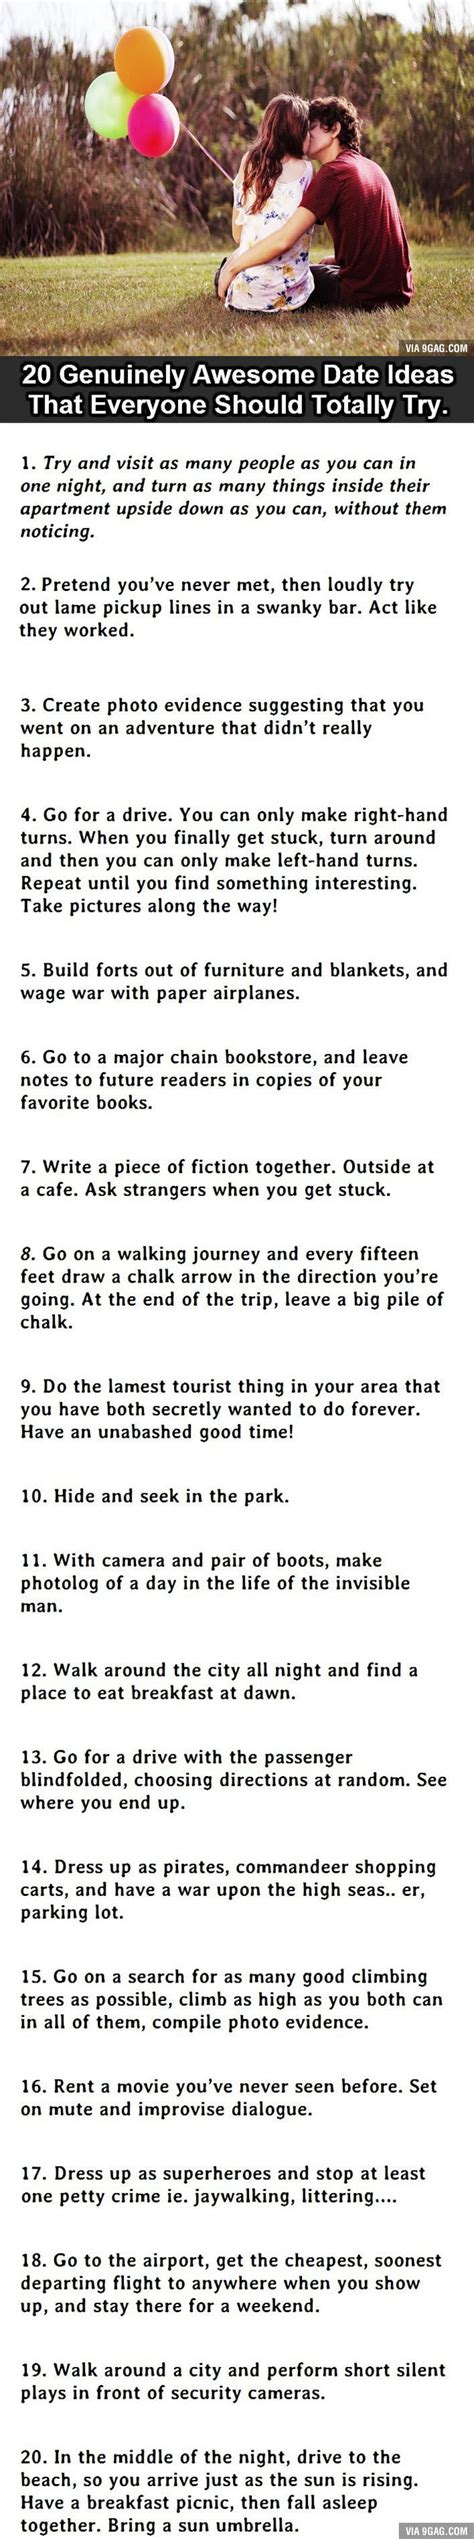 date ideas 20 uniquely awesome date ideas 6 would freak everybody